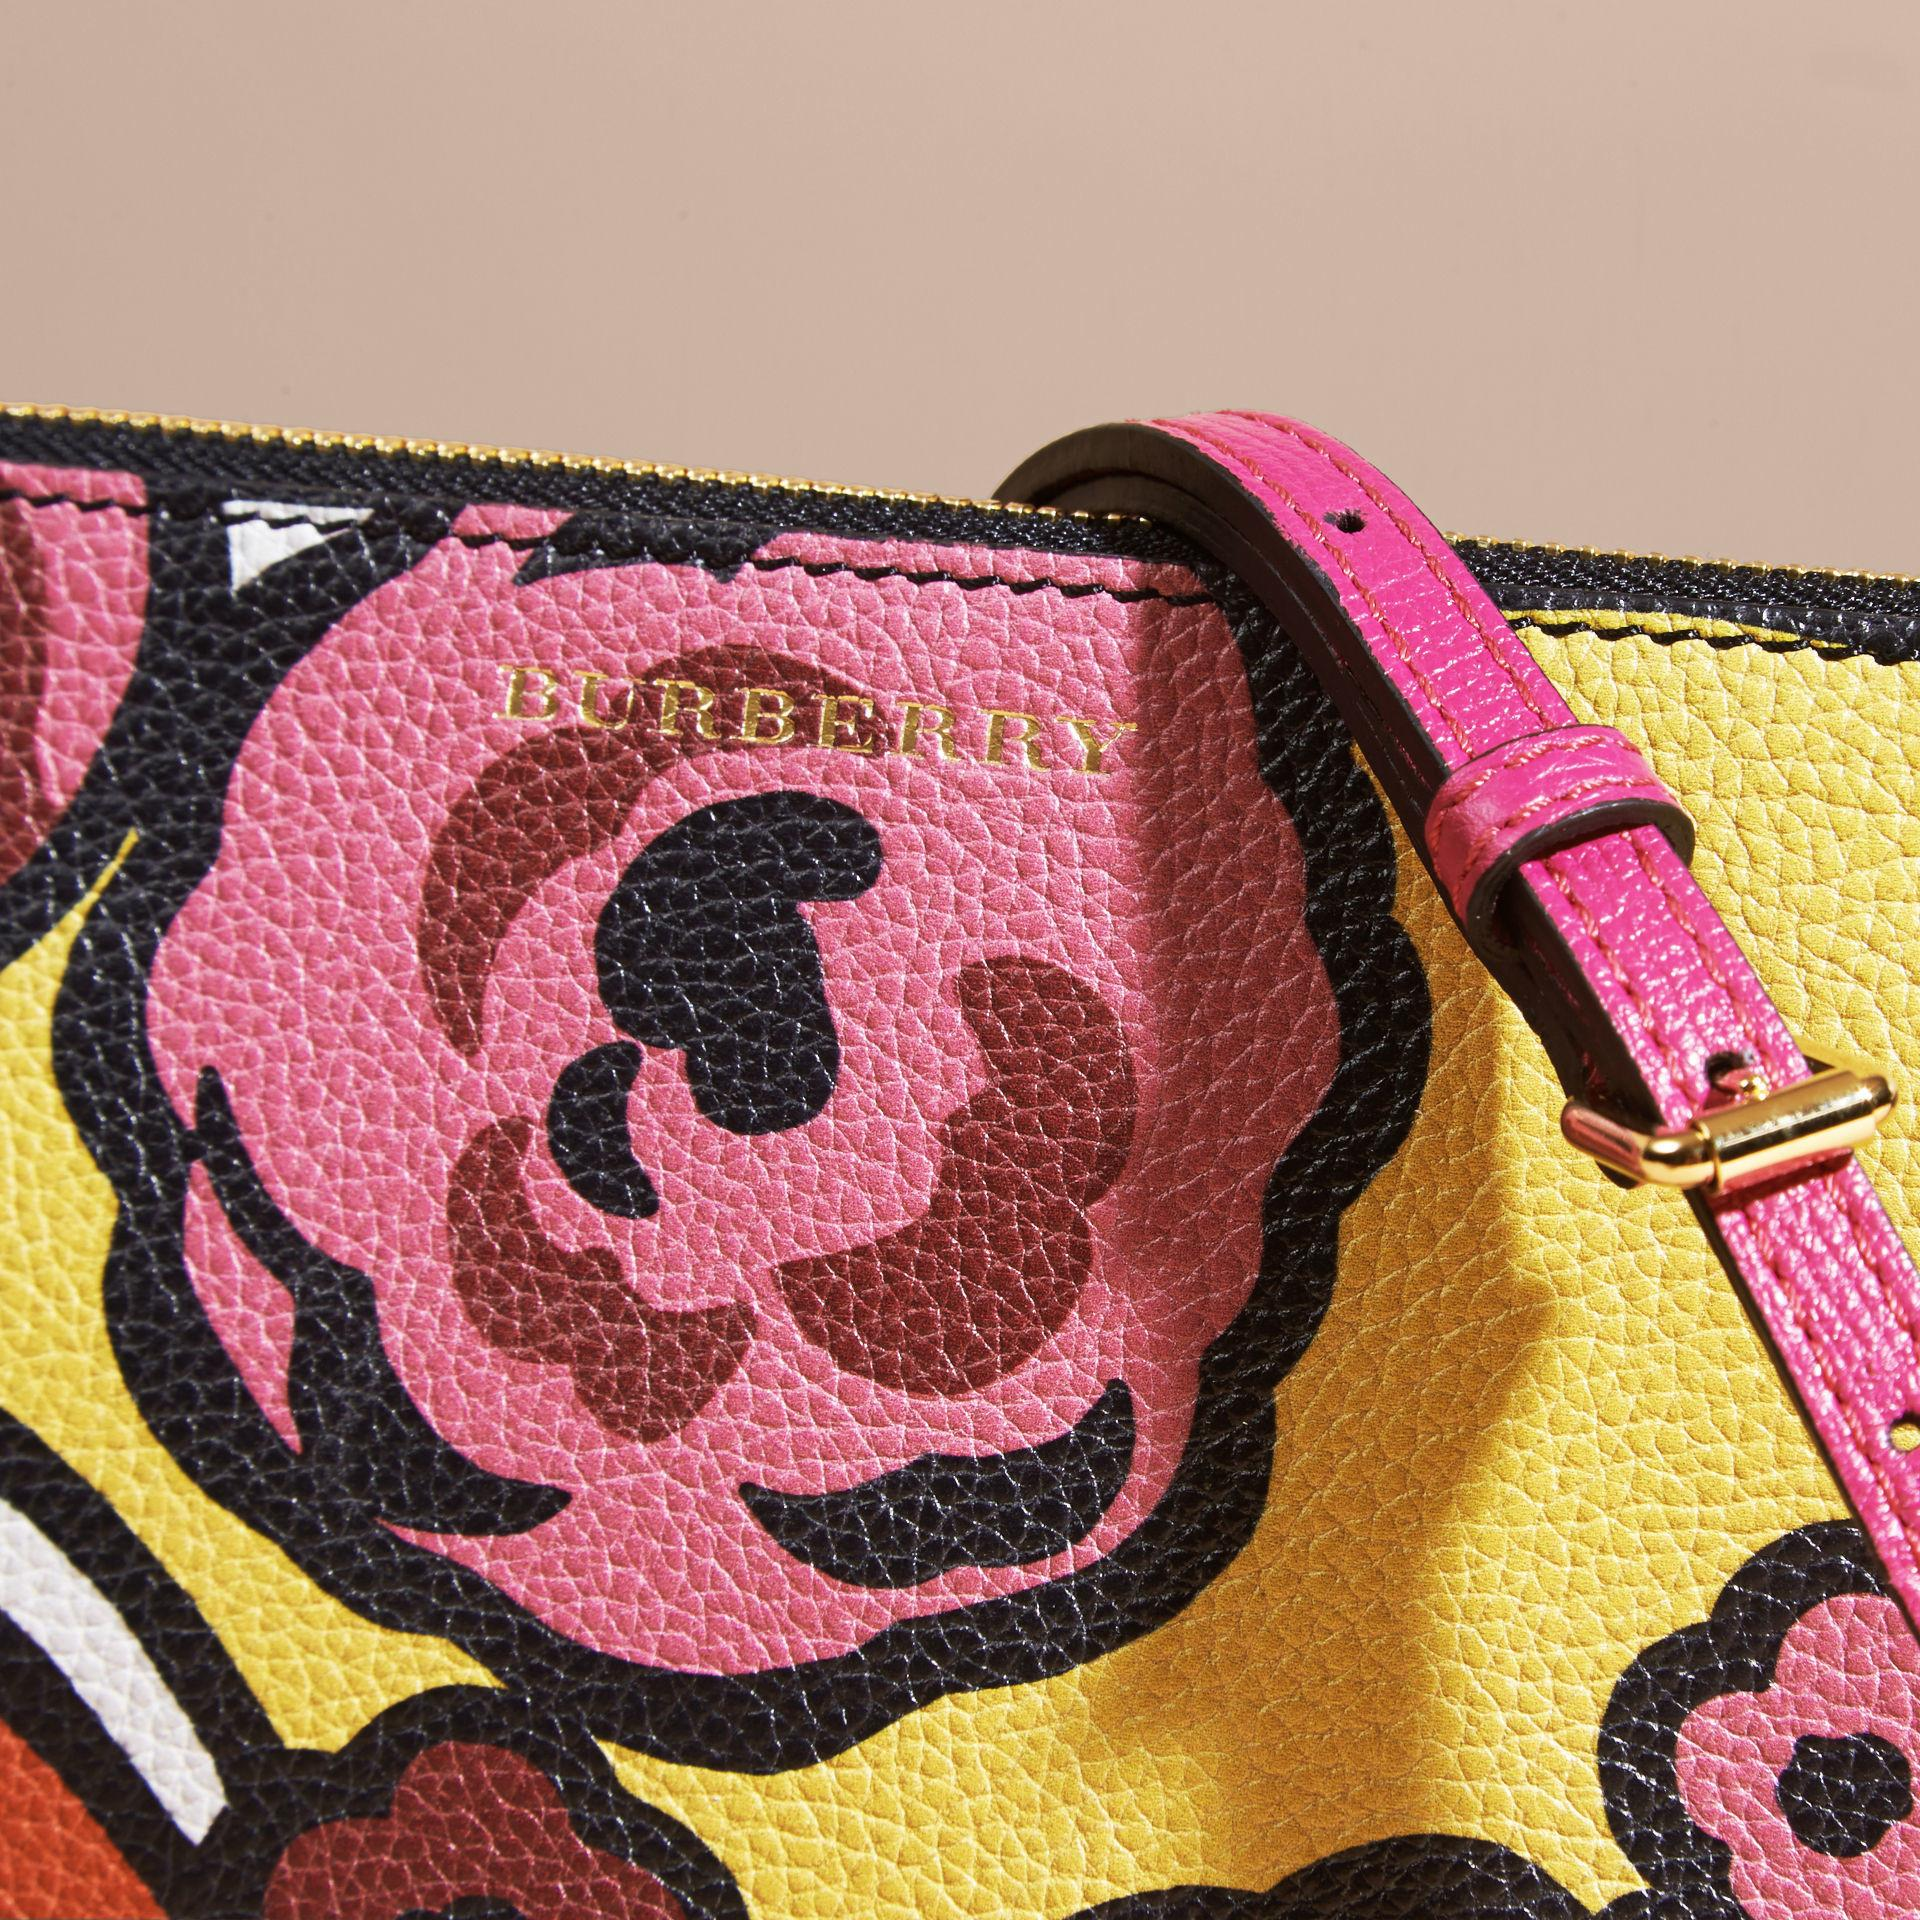 Burberry Floral Print Leather Clutch Bag Lyst